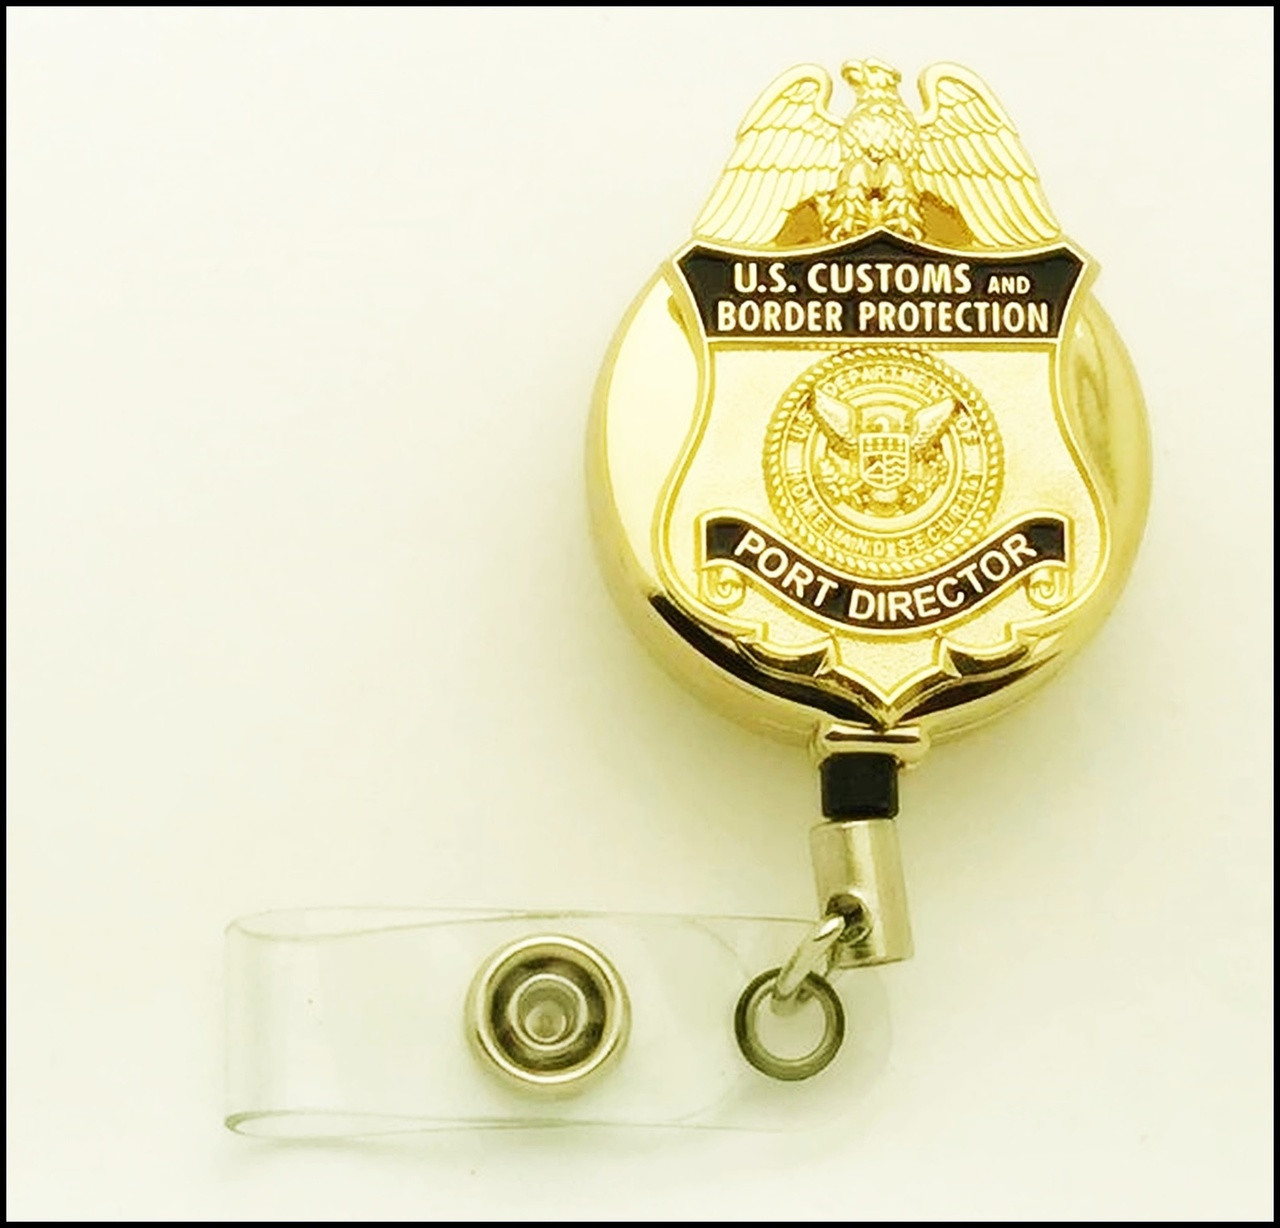 Customs and Border Protection Port Director Mini Badge ID Holder | ID Reel